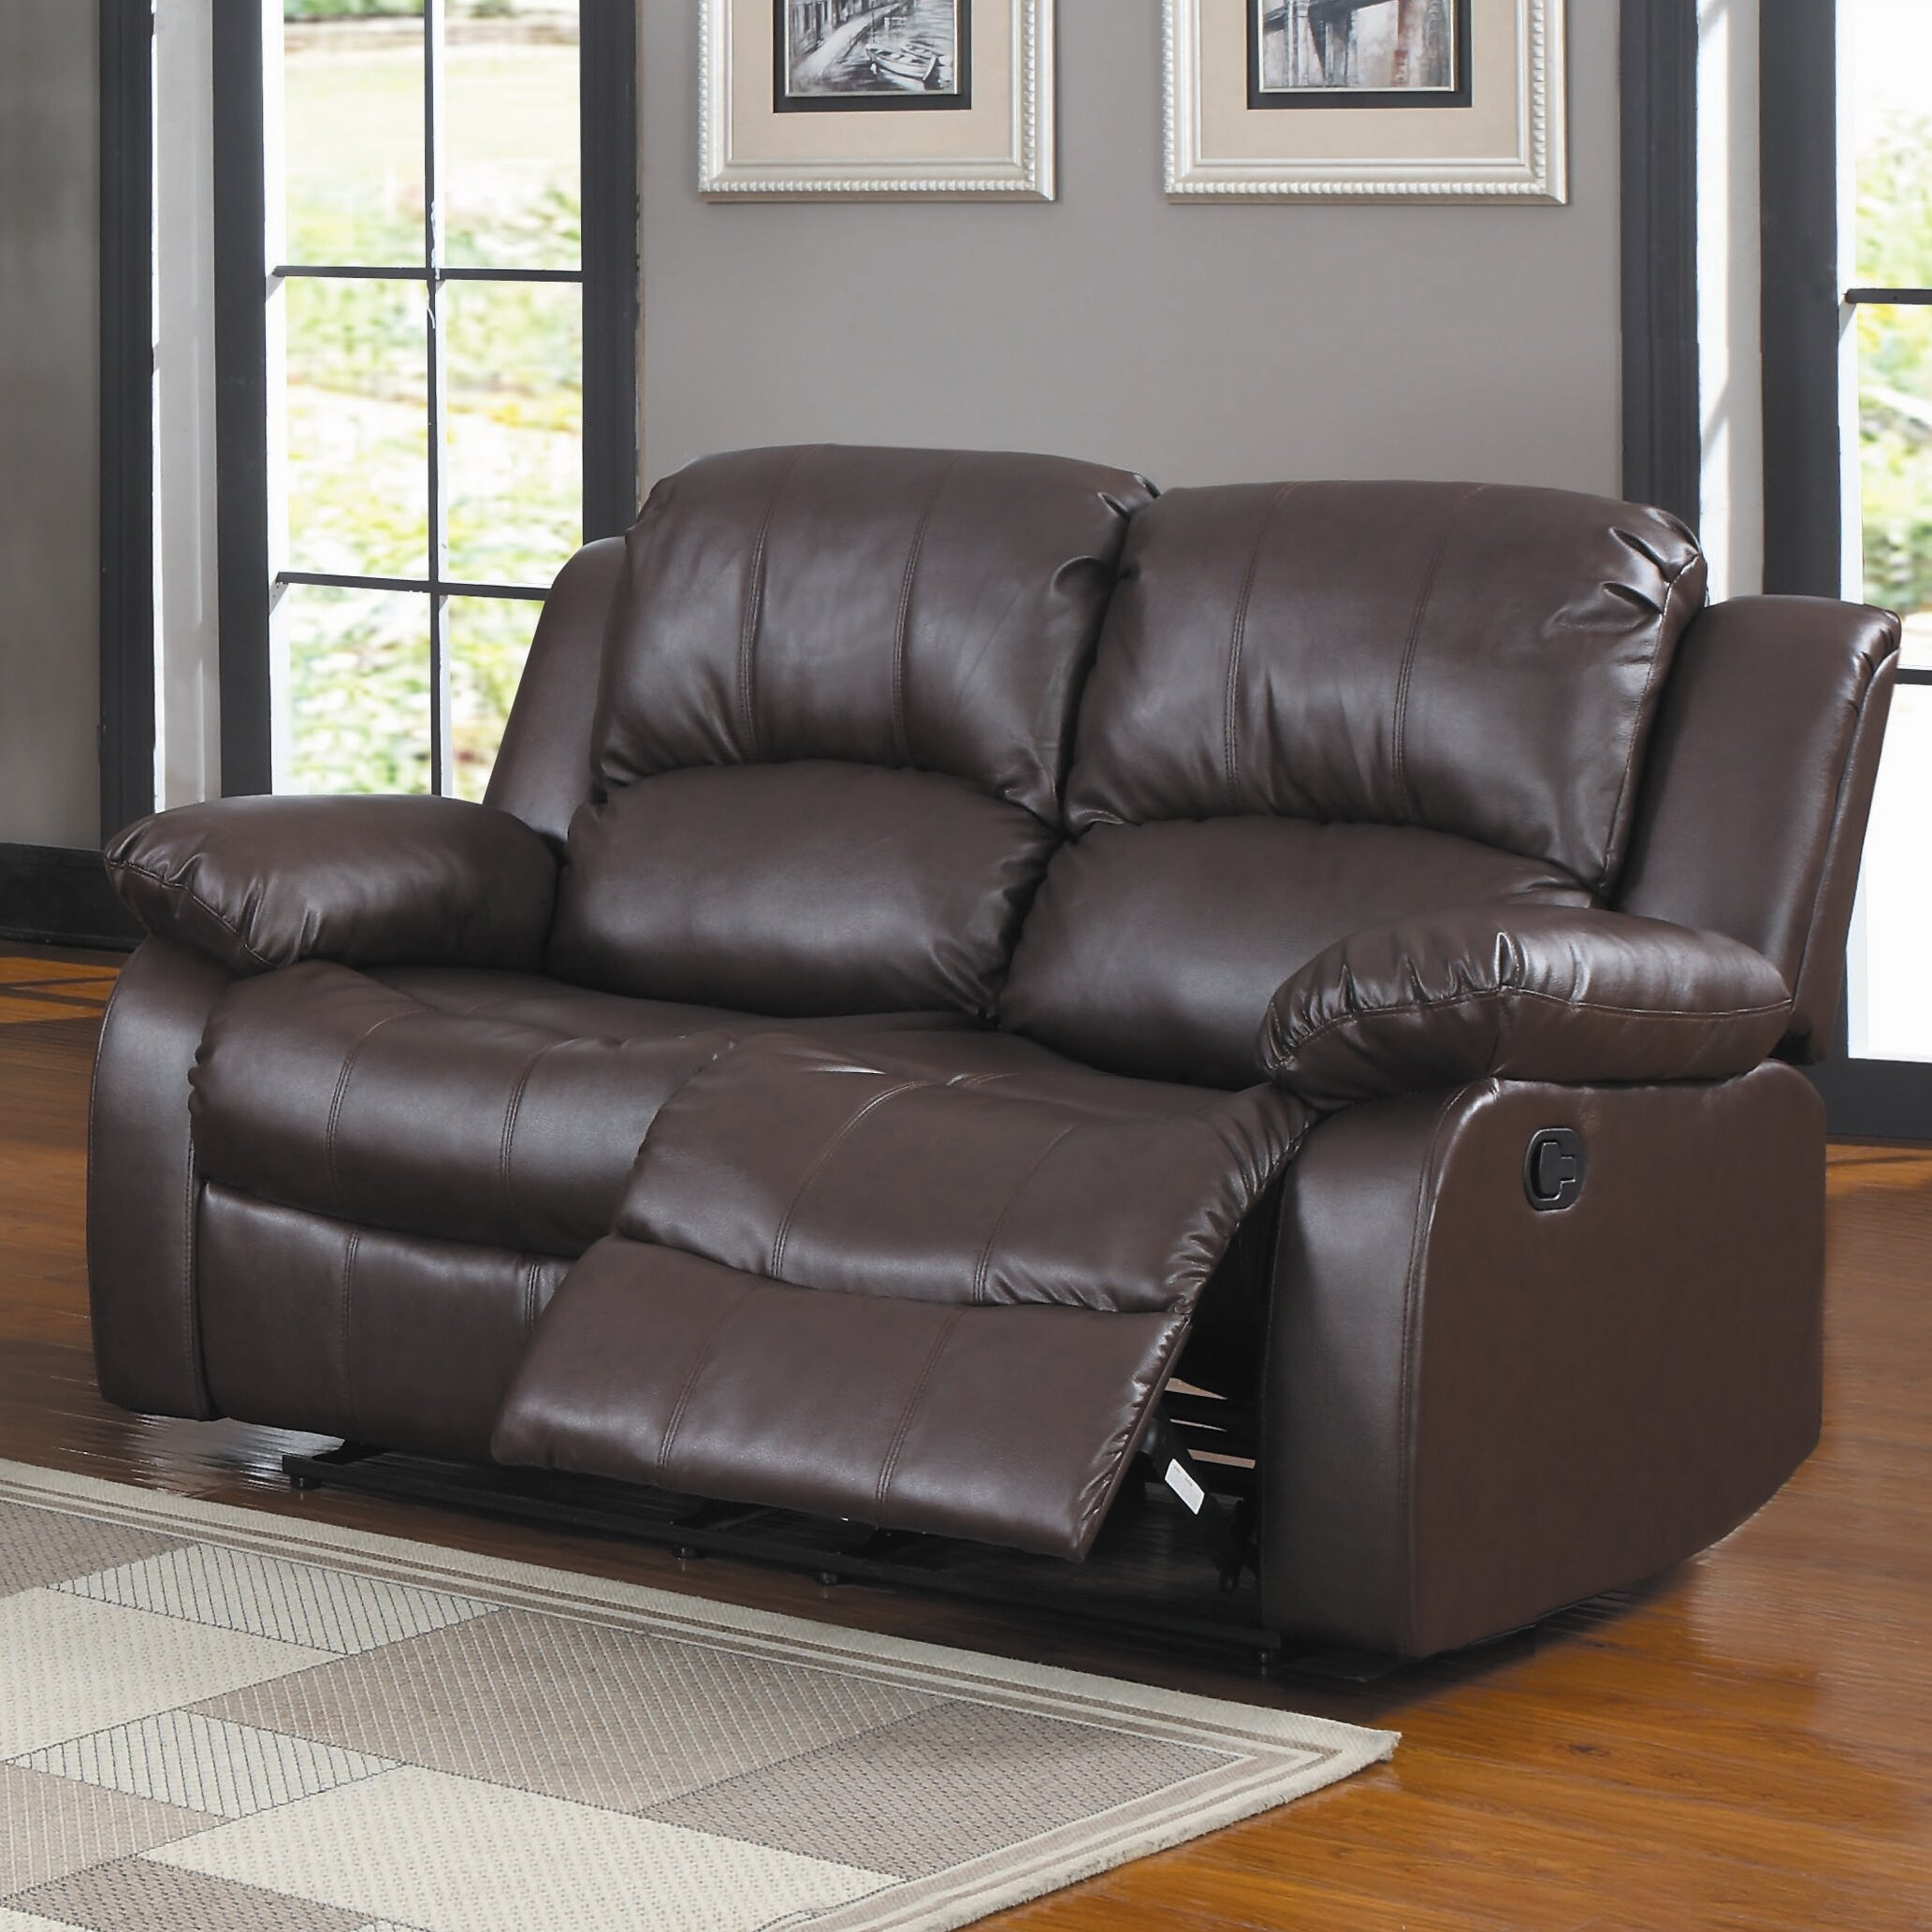 Latitude Run Malec 60 Wide Faux Leather Pillow Top Arm Reclining Loveseat Reviews Wayfair